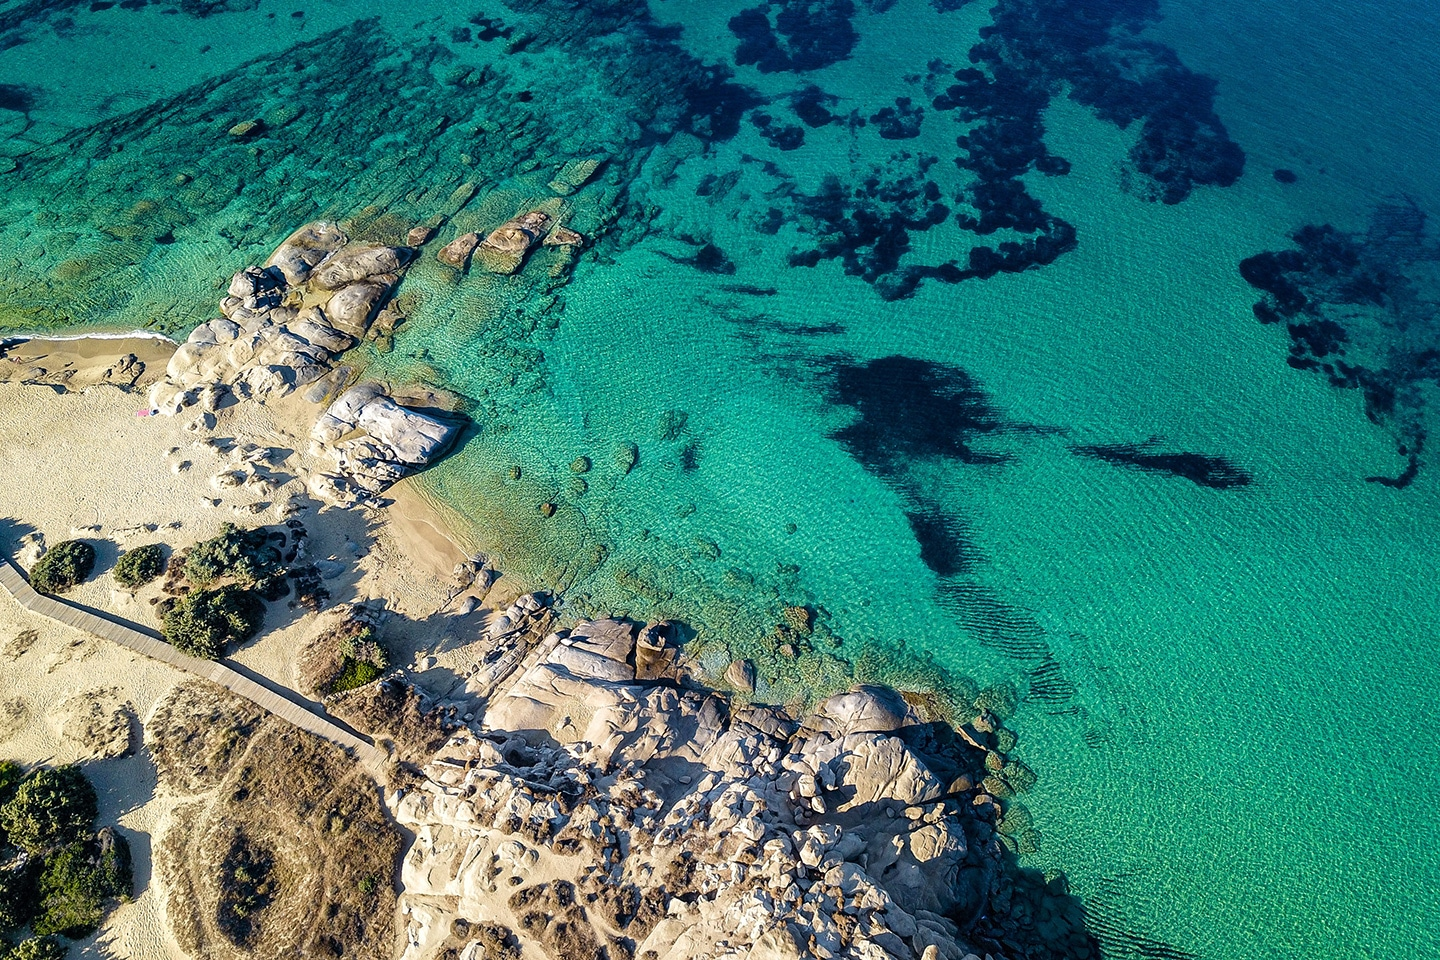 The clear waters of Naxos